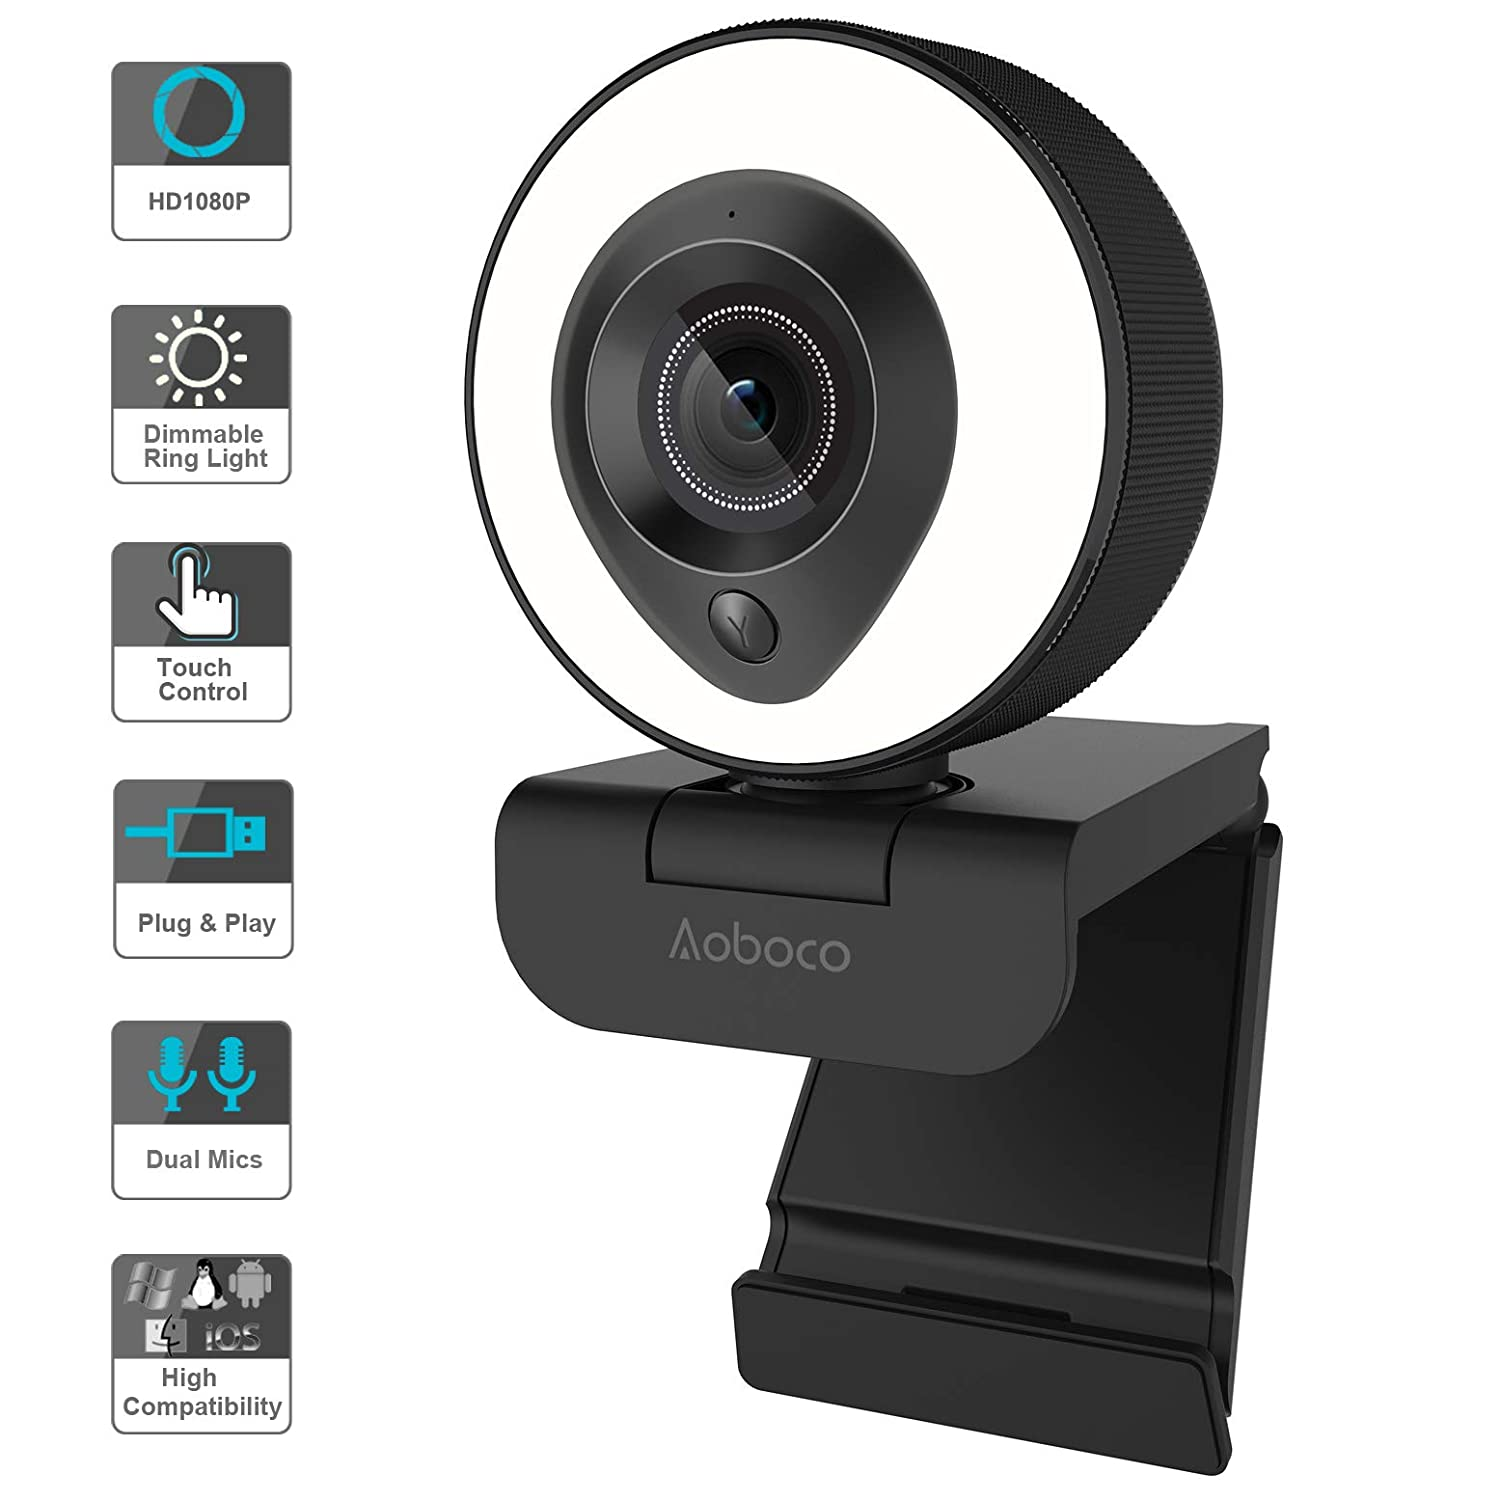 Aoboco Pro Stream Webcam 1080P HD with Dual Mics & Dimmable Ring Light, PC  Webcam Conference Game Video Web Camera for Computer Monitor Laptop Desktop